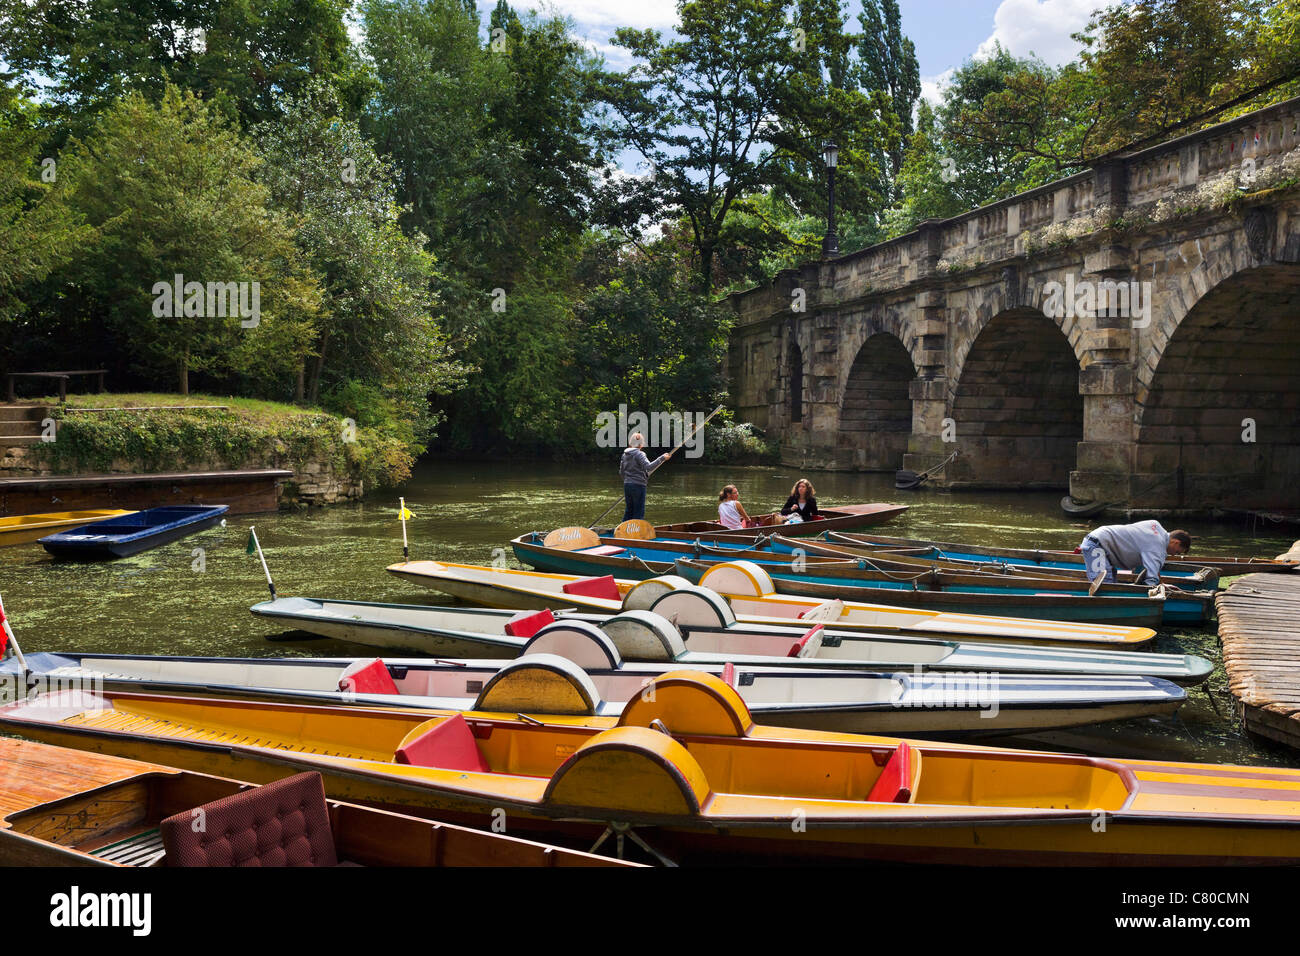 Punts on the River Cherwell underneath Magdalen Bridge, Oxford, Oxfordshire, England, UK - Stock Image